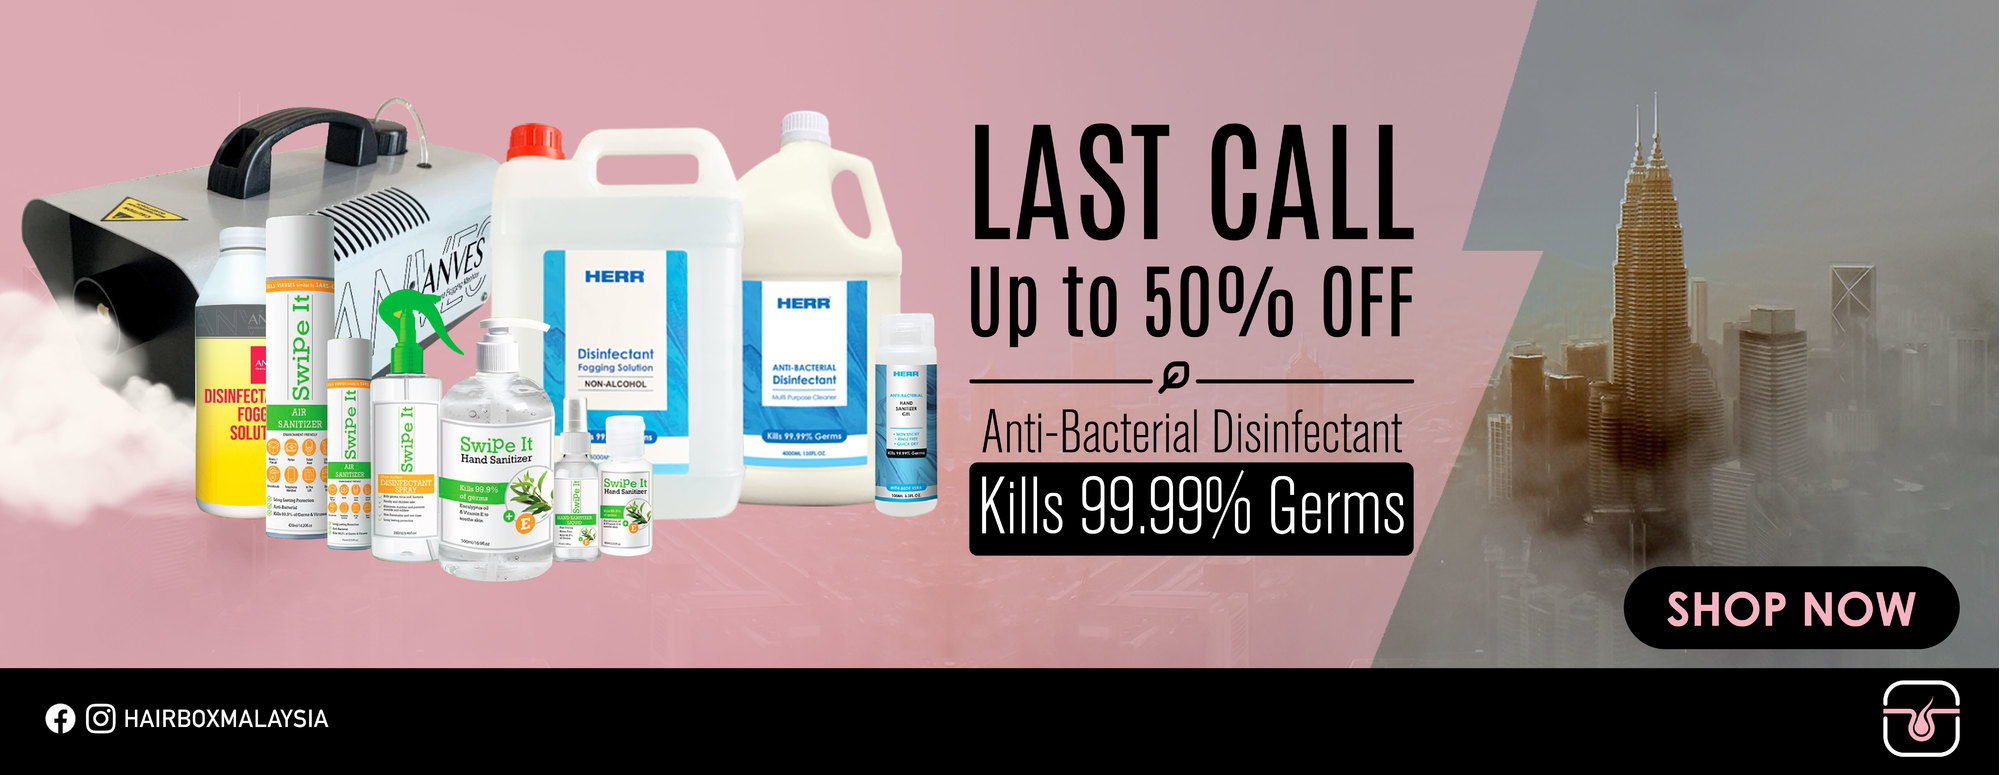 Disinfectant Product Last Call Deal!